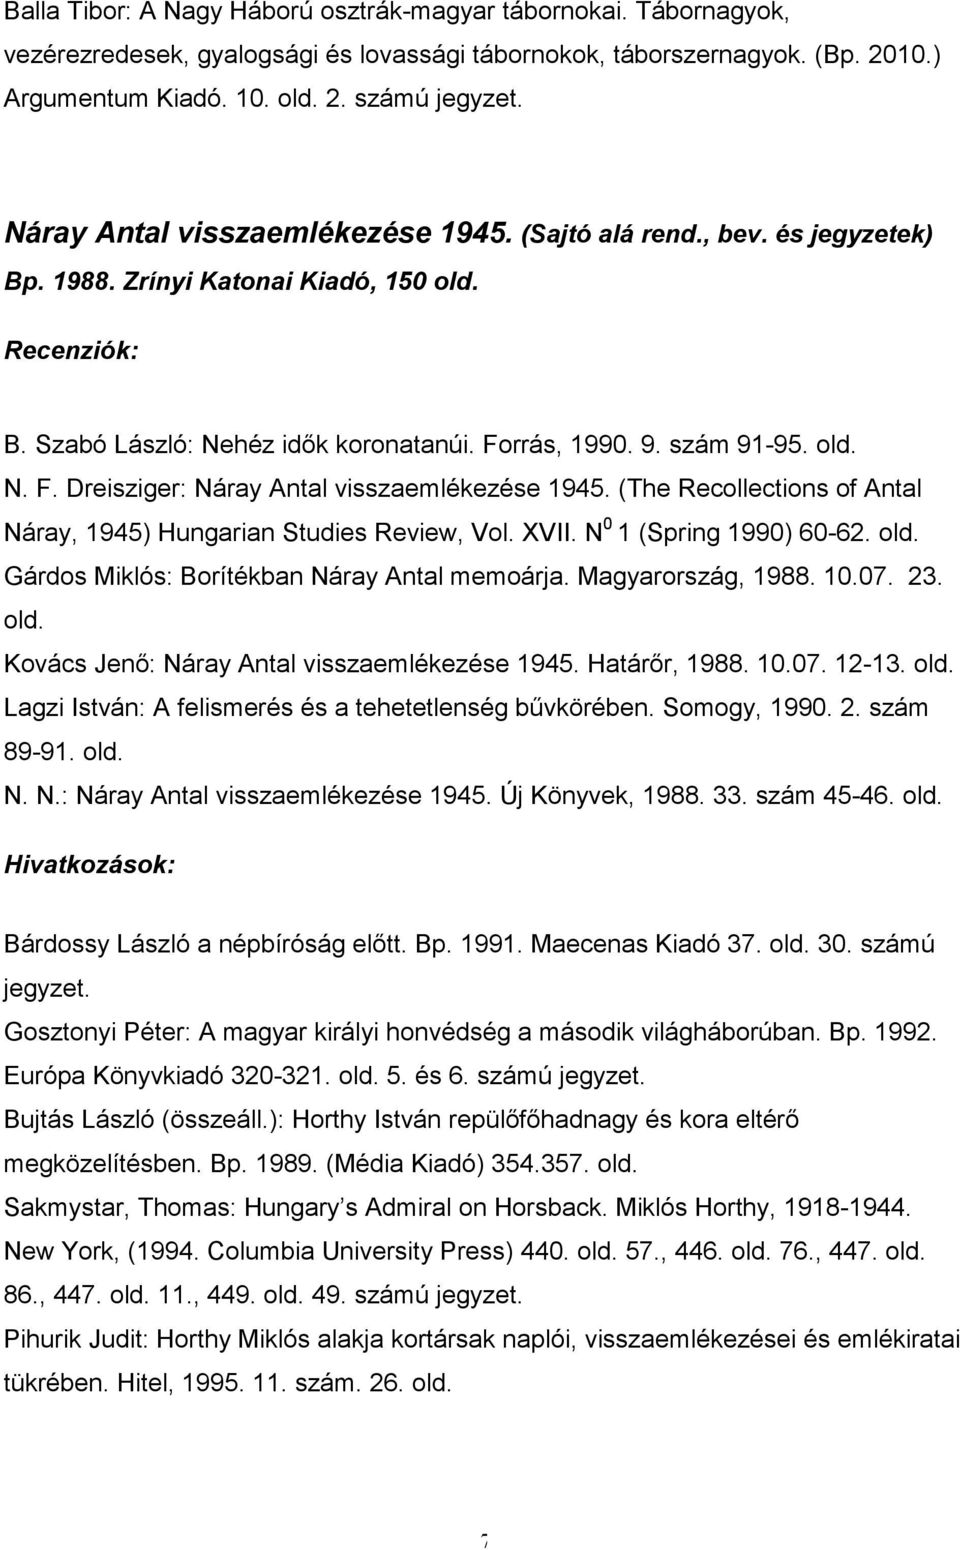 rrás, 1990. 9. szám 91-95. N. F. Dreisziger: Náray Antal visszaemlékezése 1945. (The Recollections of Antal Náray, 1945) Hungarian Studies Review, Vol. XVII. N 0 1 (Spring 1990) 60-62.